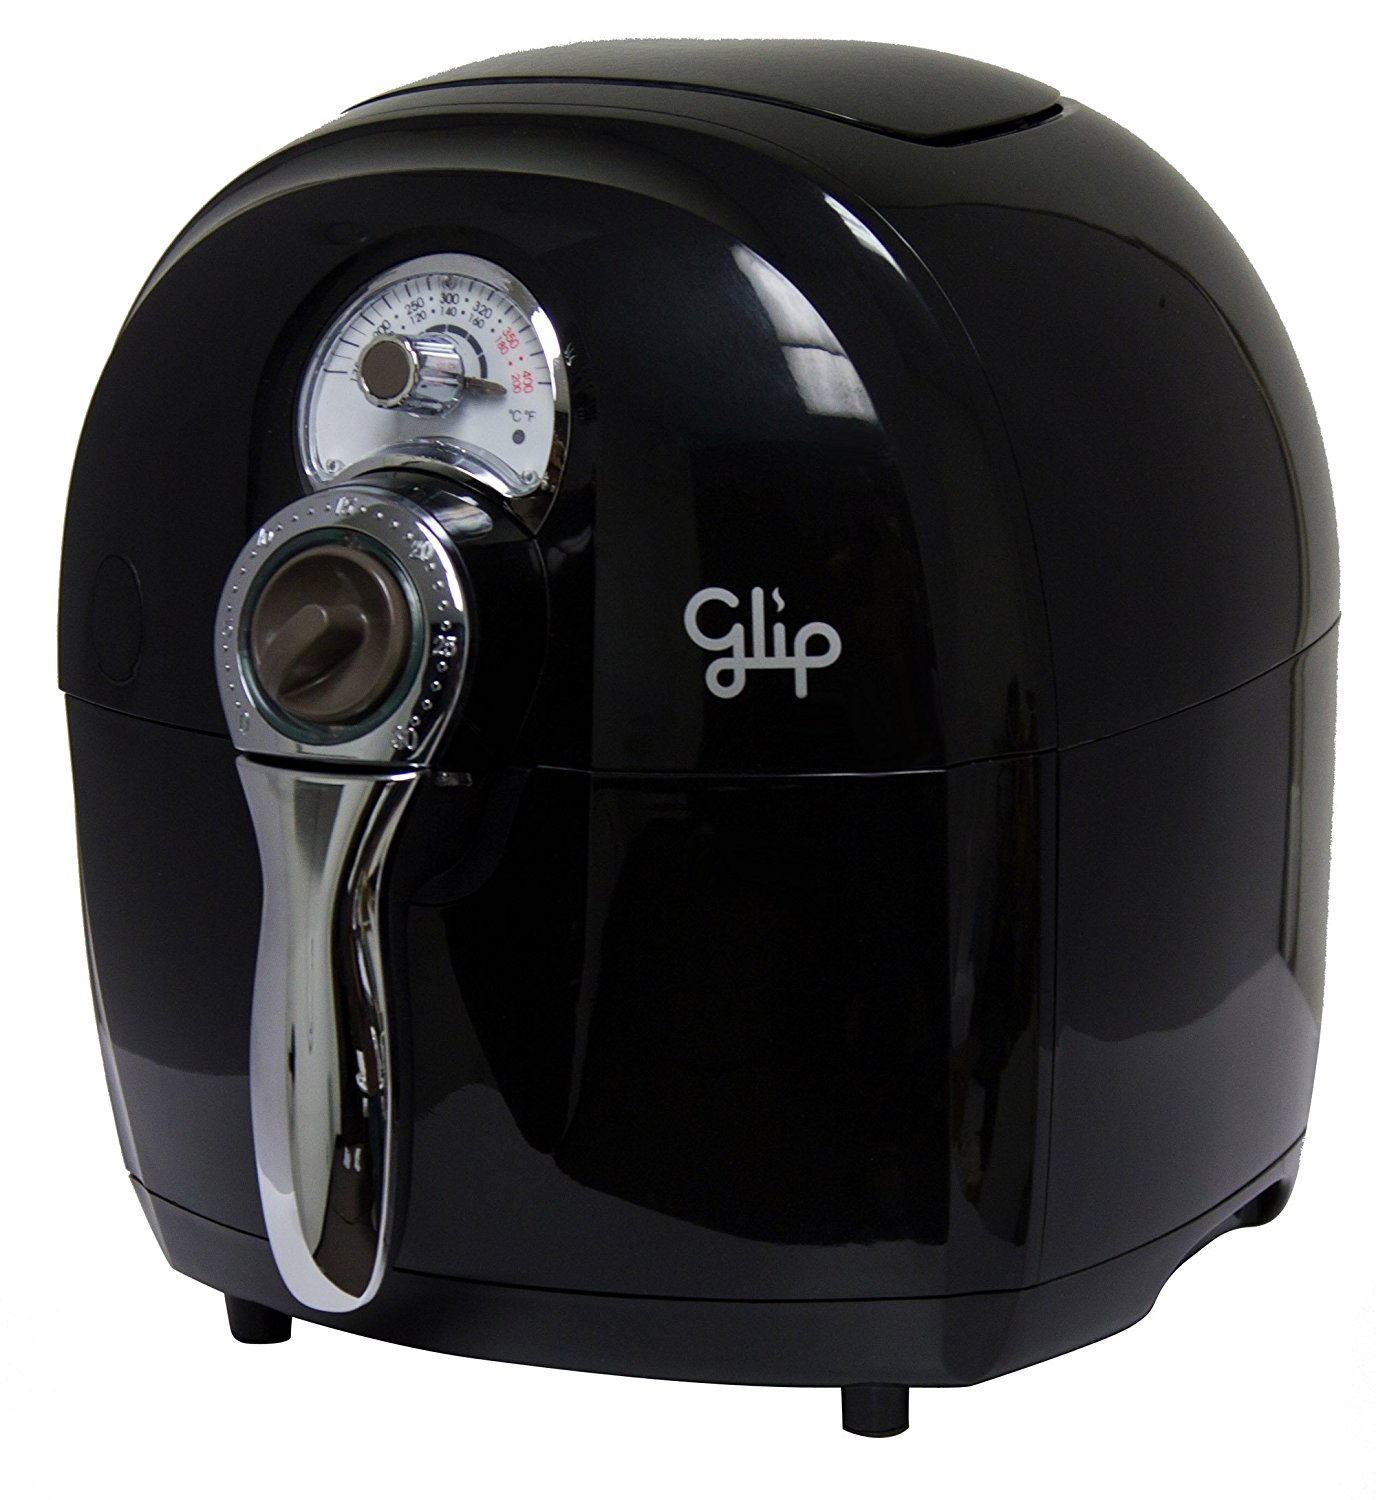 Glip AF800 Oil-Less Air Fryer Review